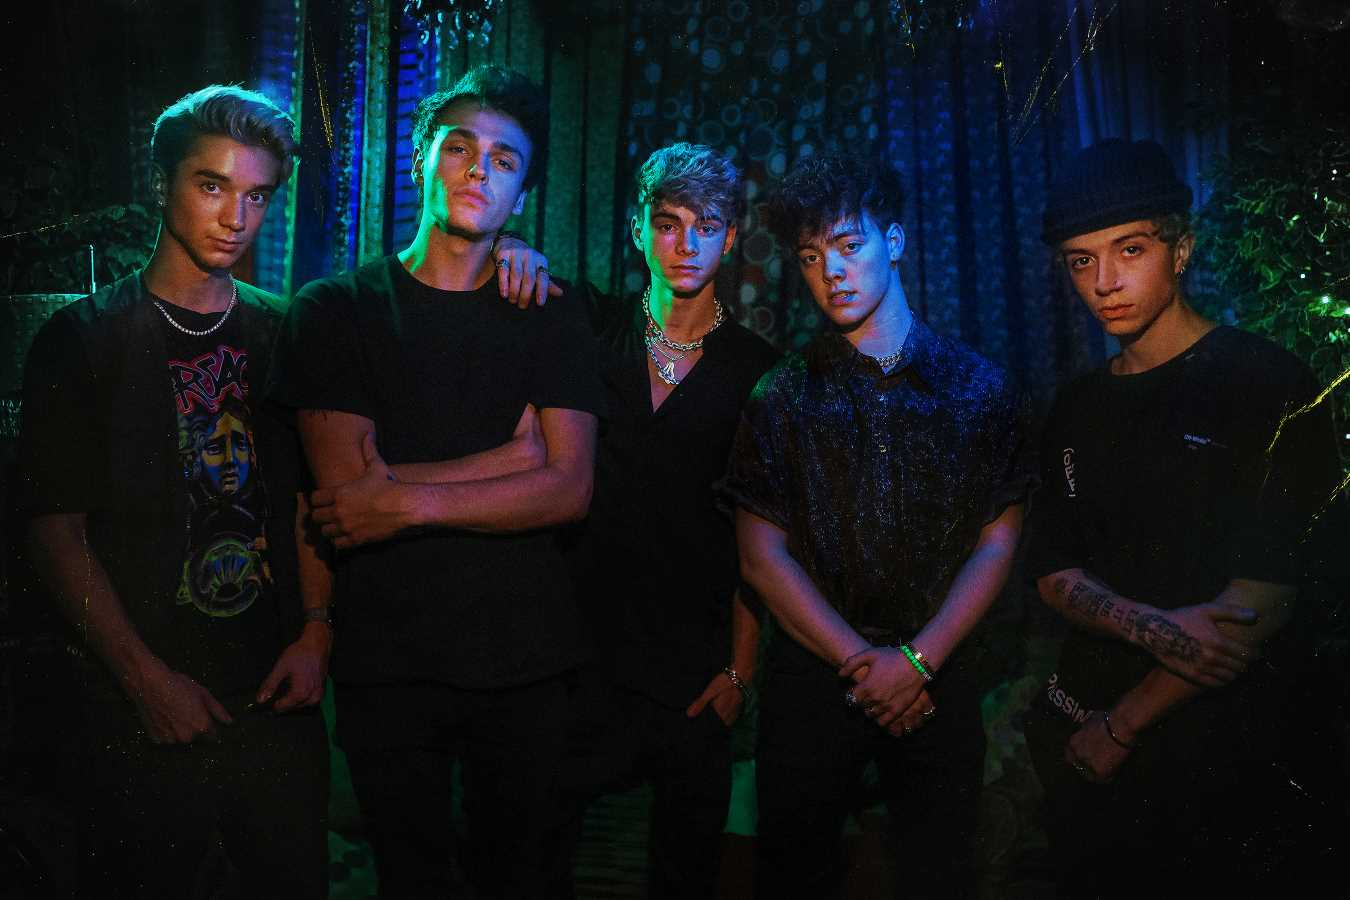 Why Don't We Releases New Single 'Come to Brazil' in Nod to South American Fans